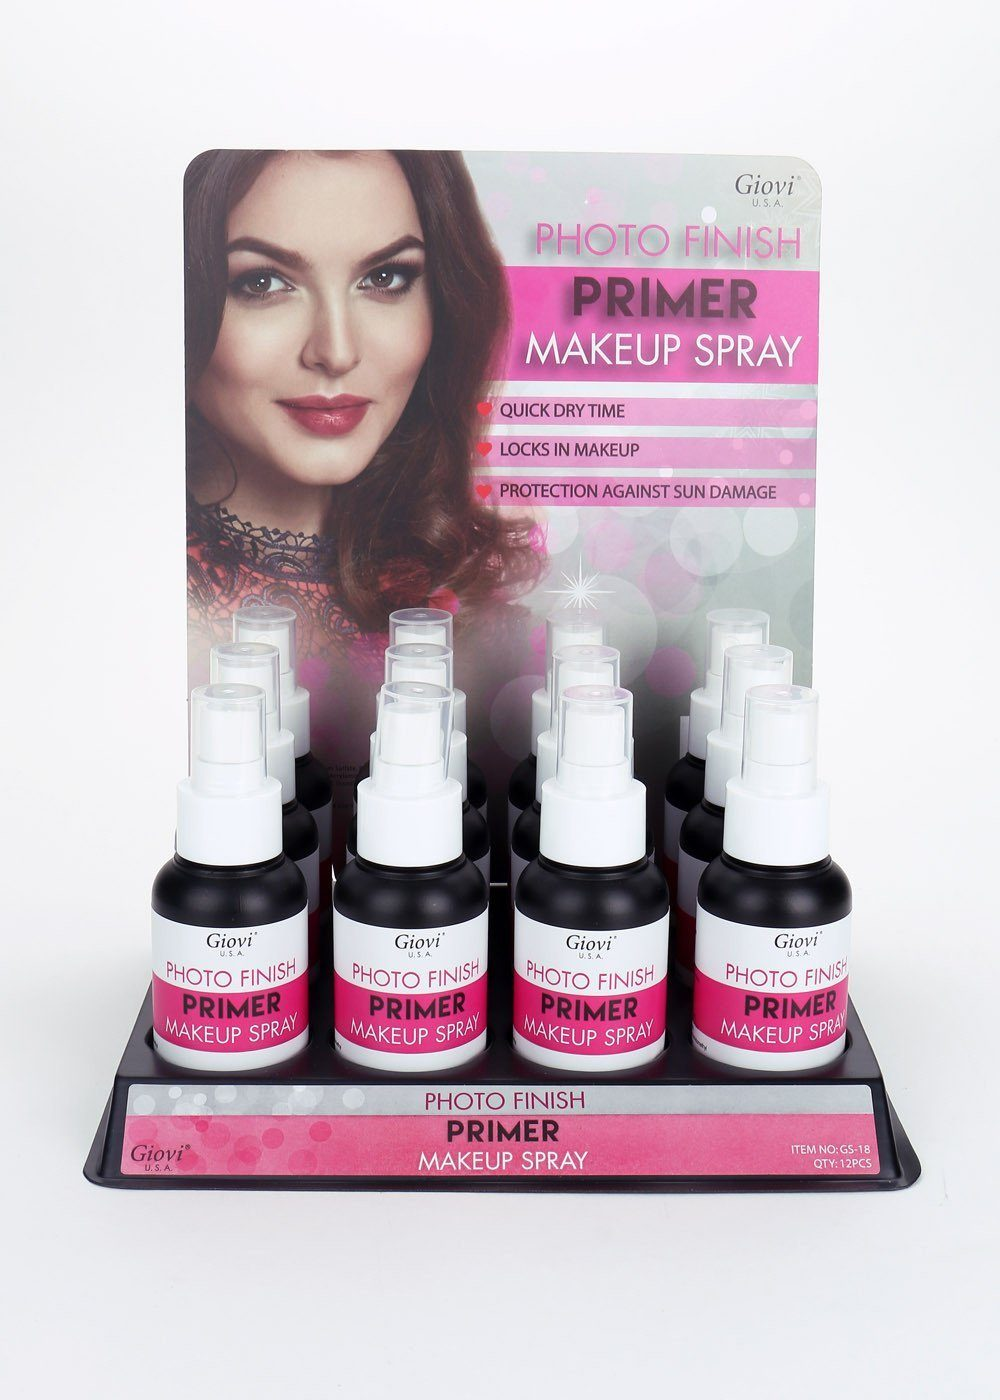 Giovi Photo Finish Primer Makeup Spray Set #GS18 (12PC)